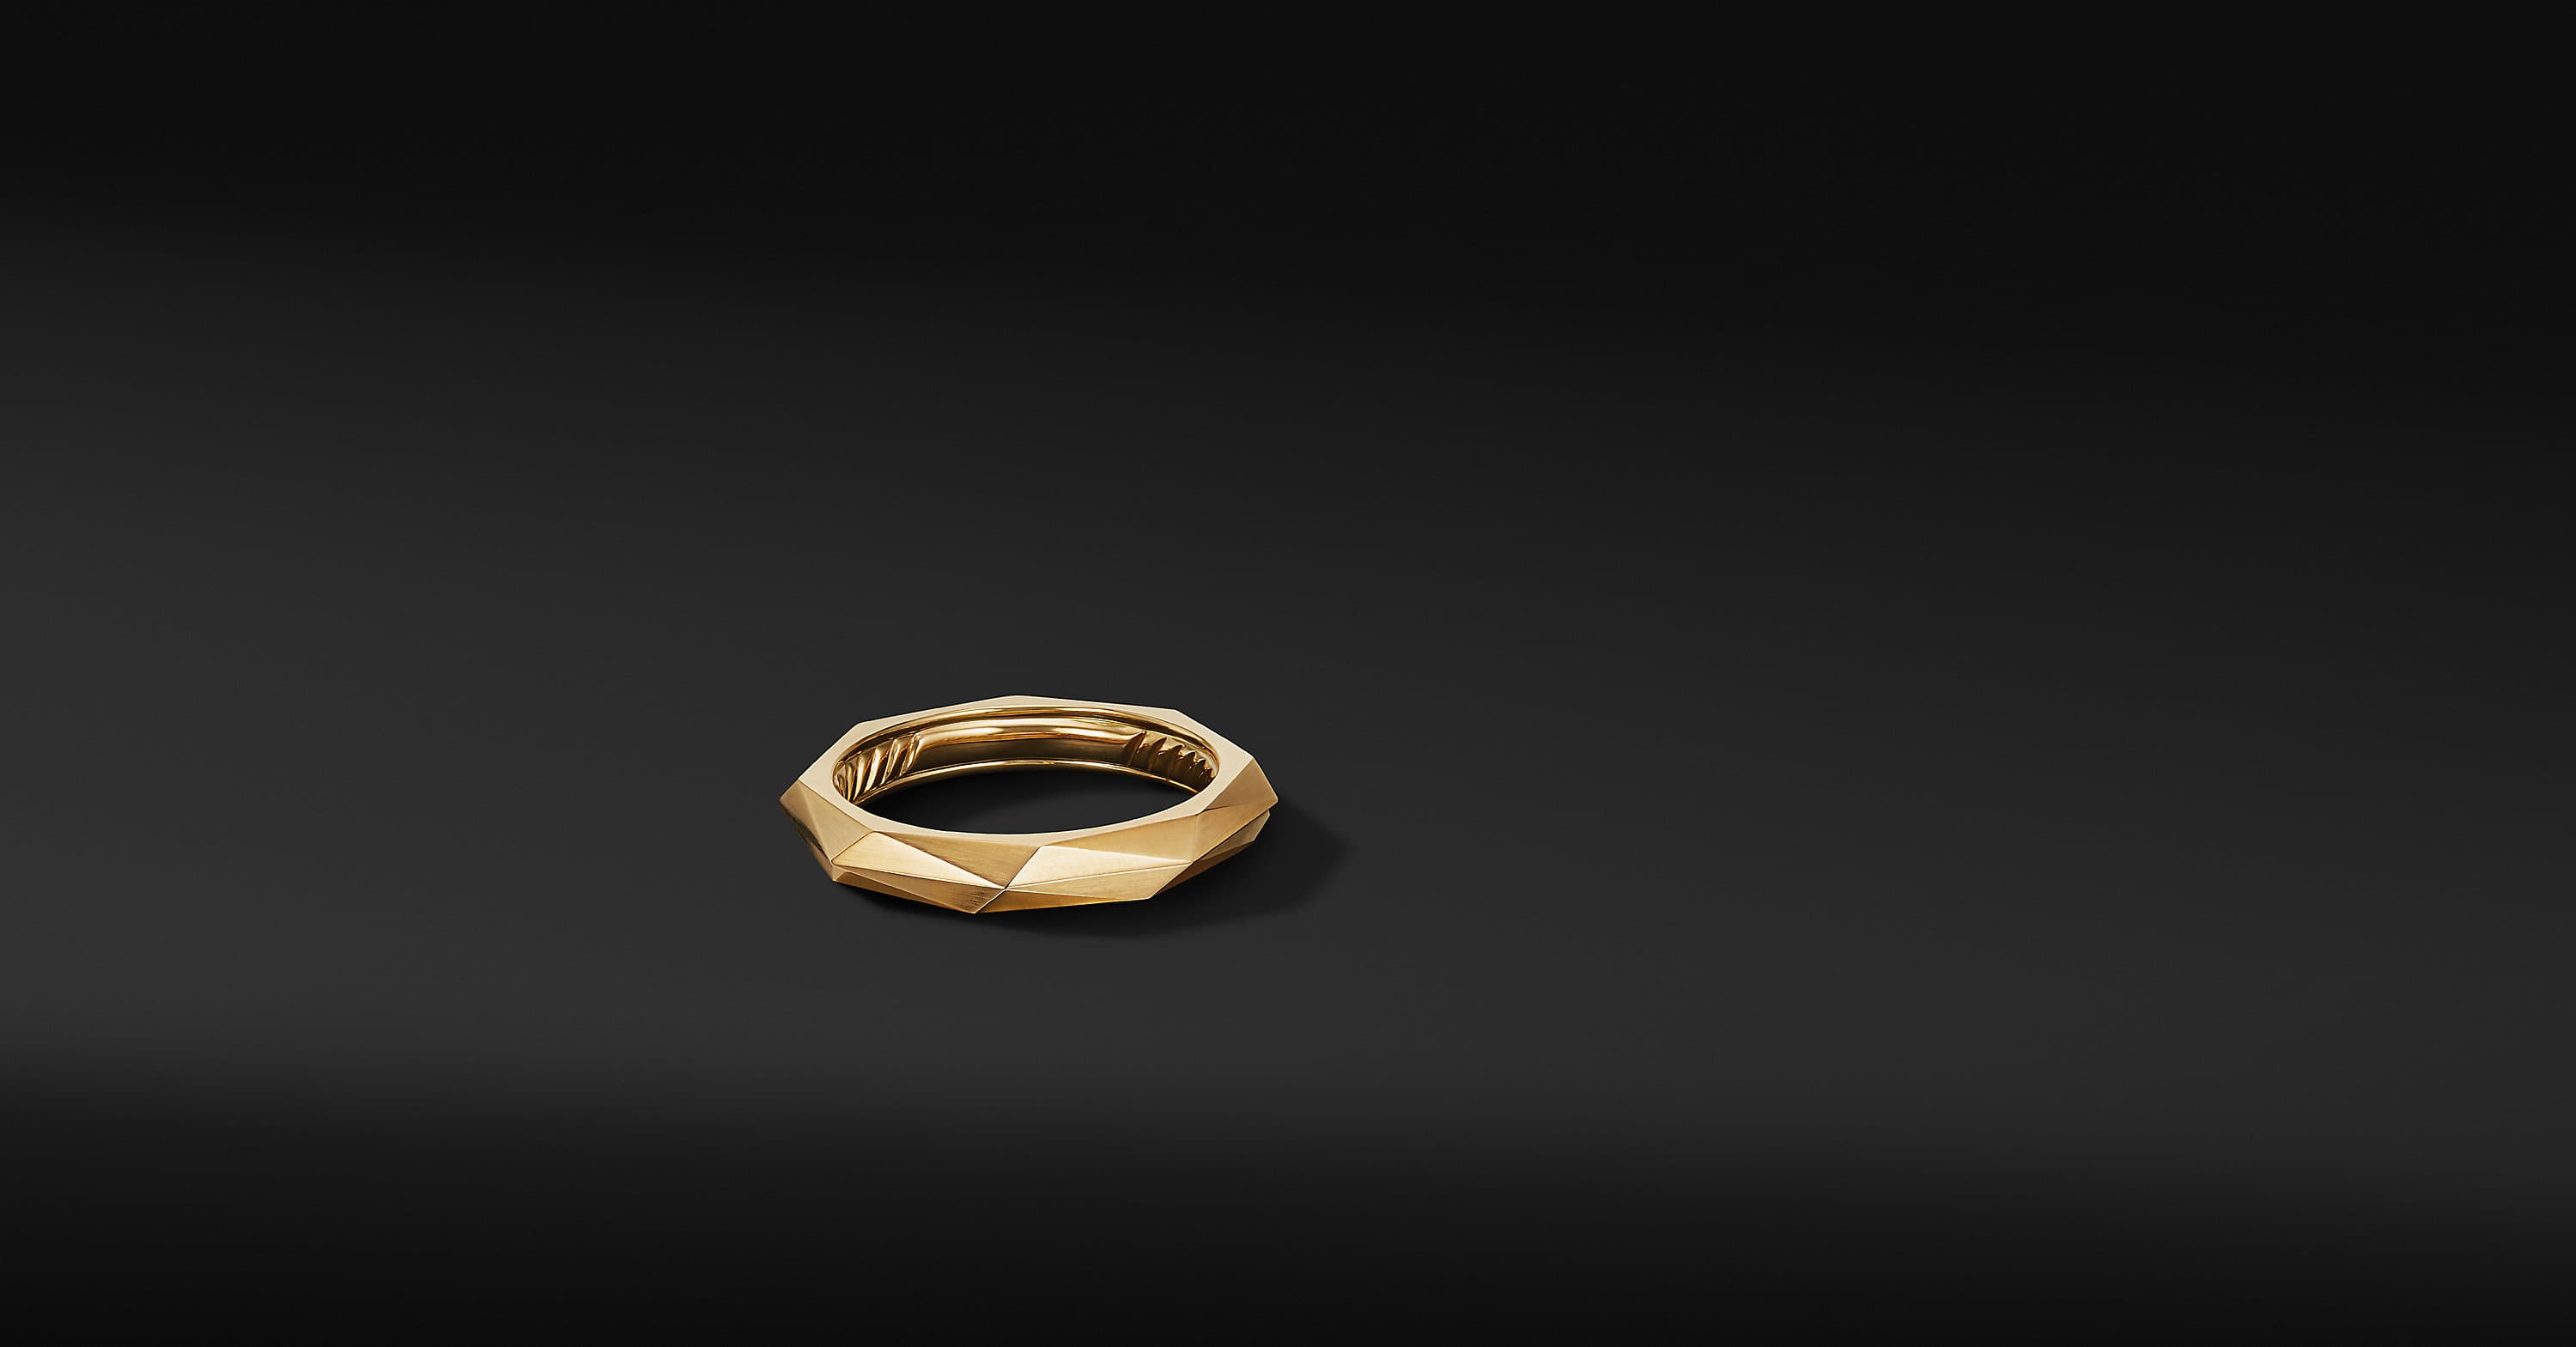 Torqued Faceted Band Ring in 18K Yellow Gold, 4mm